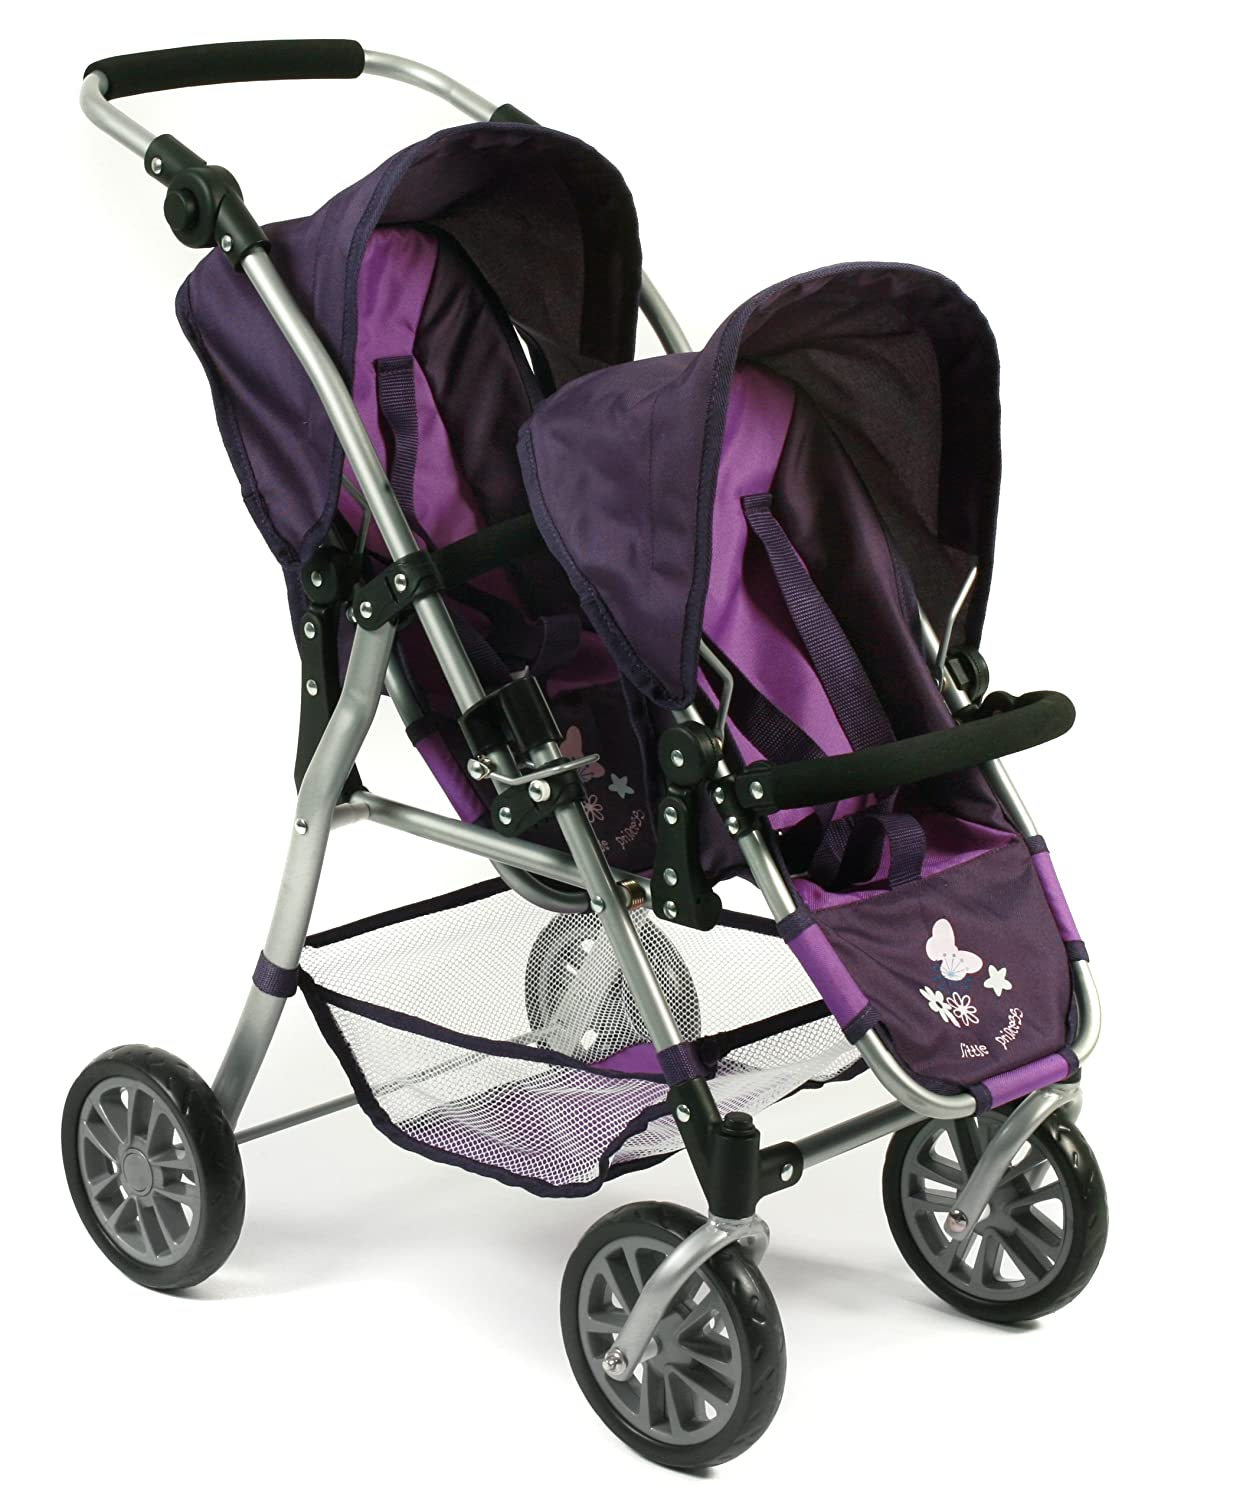 Amazon.com: Bayer Chic 2000 – Tandem Pushchair (Twinny Twin Doll Pram for Dolls up to Approx. 50 cm, Choice of Colours: Toys & Games